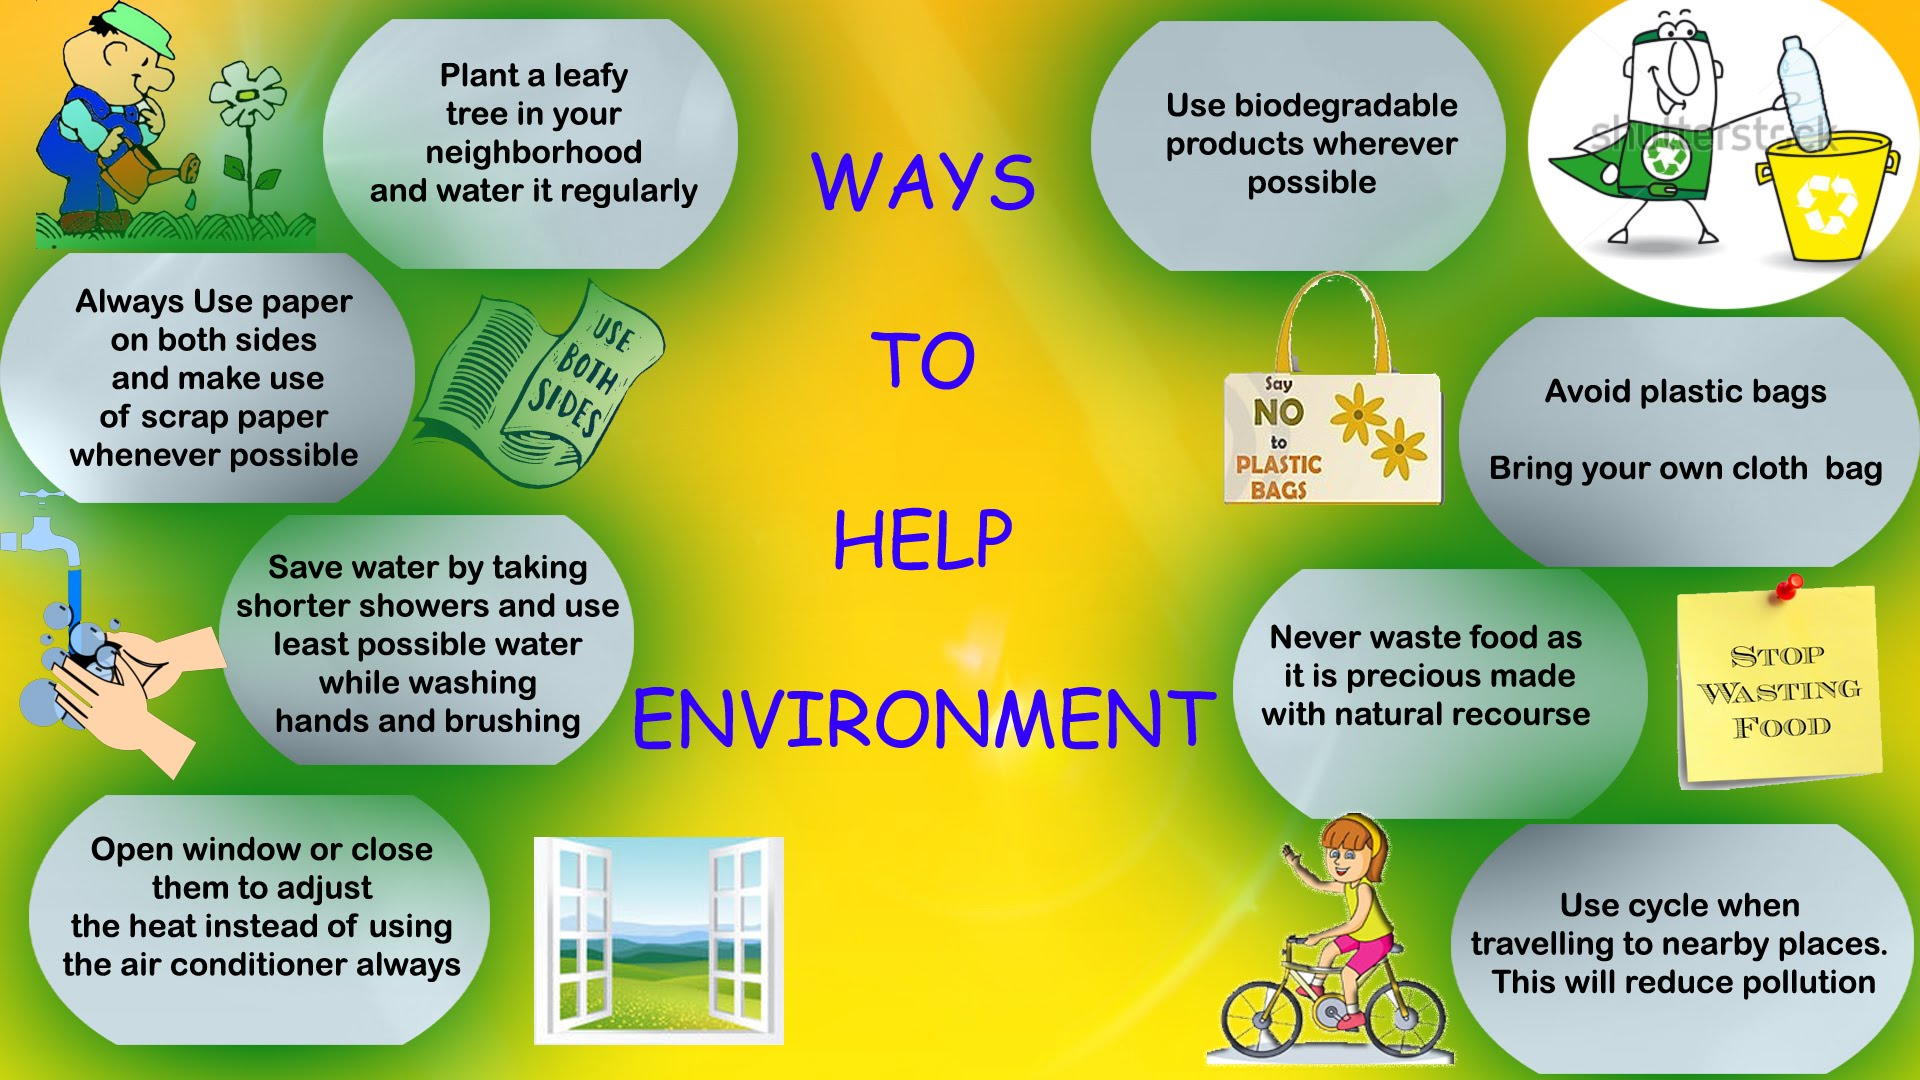 ways to protect the environment 10 ways to save the environment, easy ways to save make the world a better place, healing the planet, helping the planet, how to save the environment.